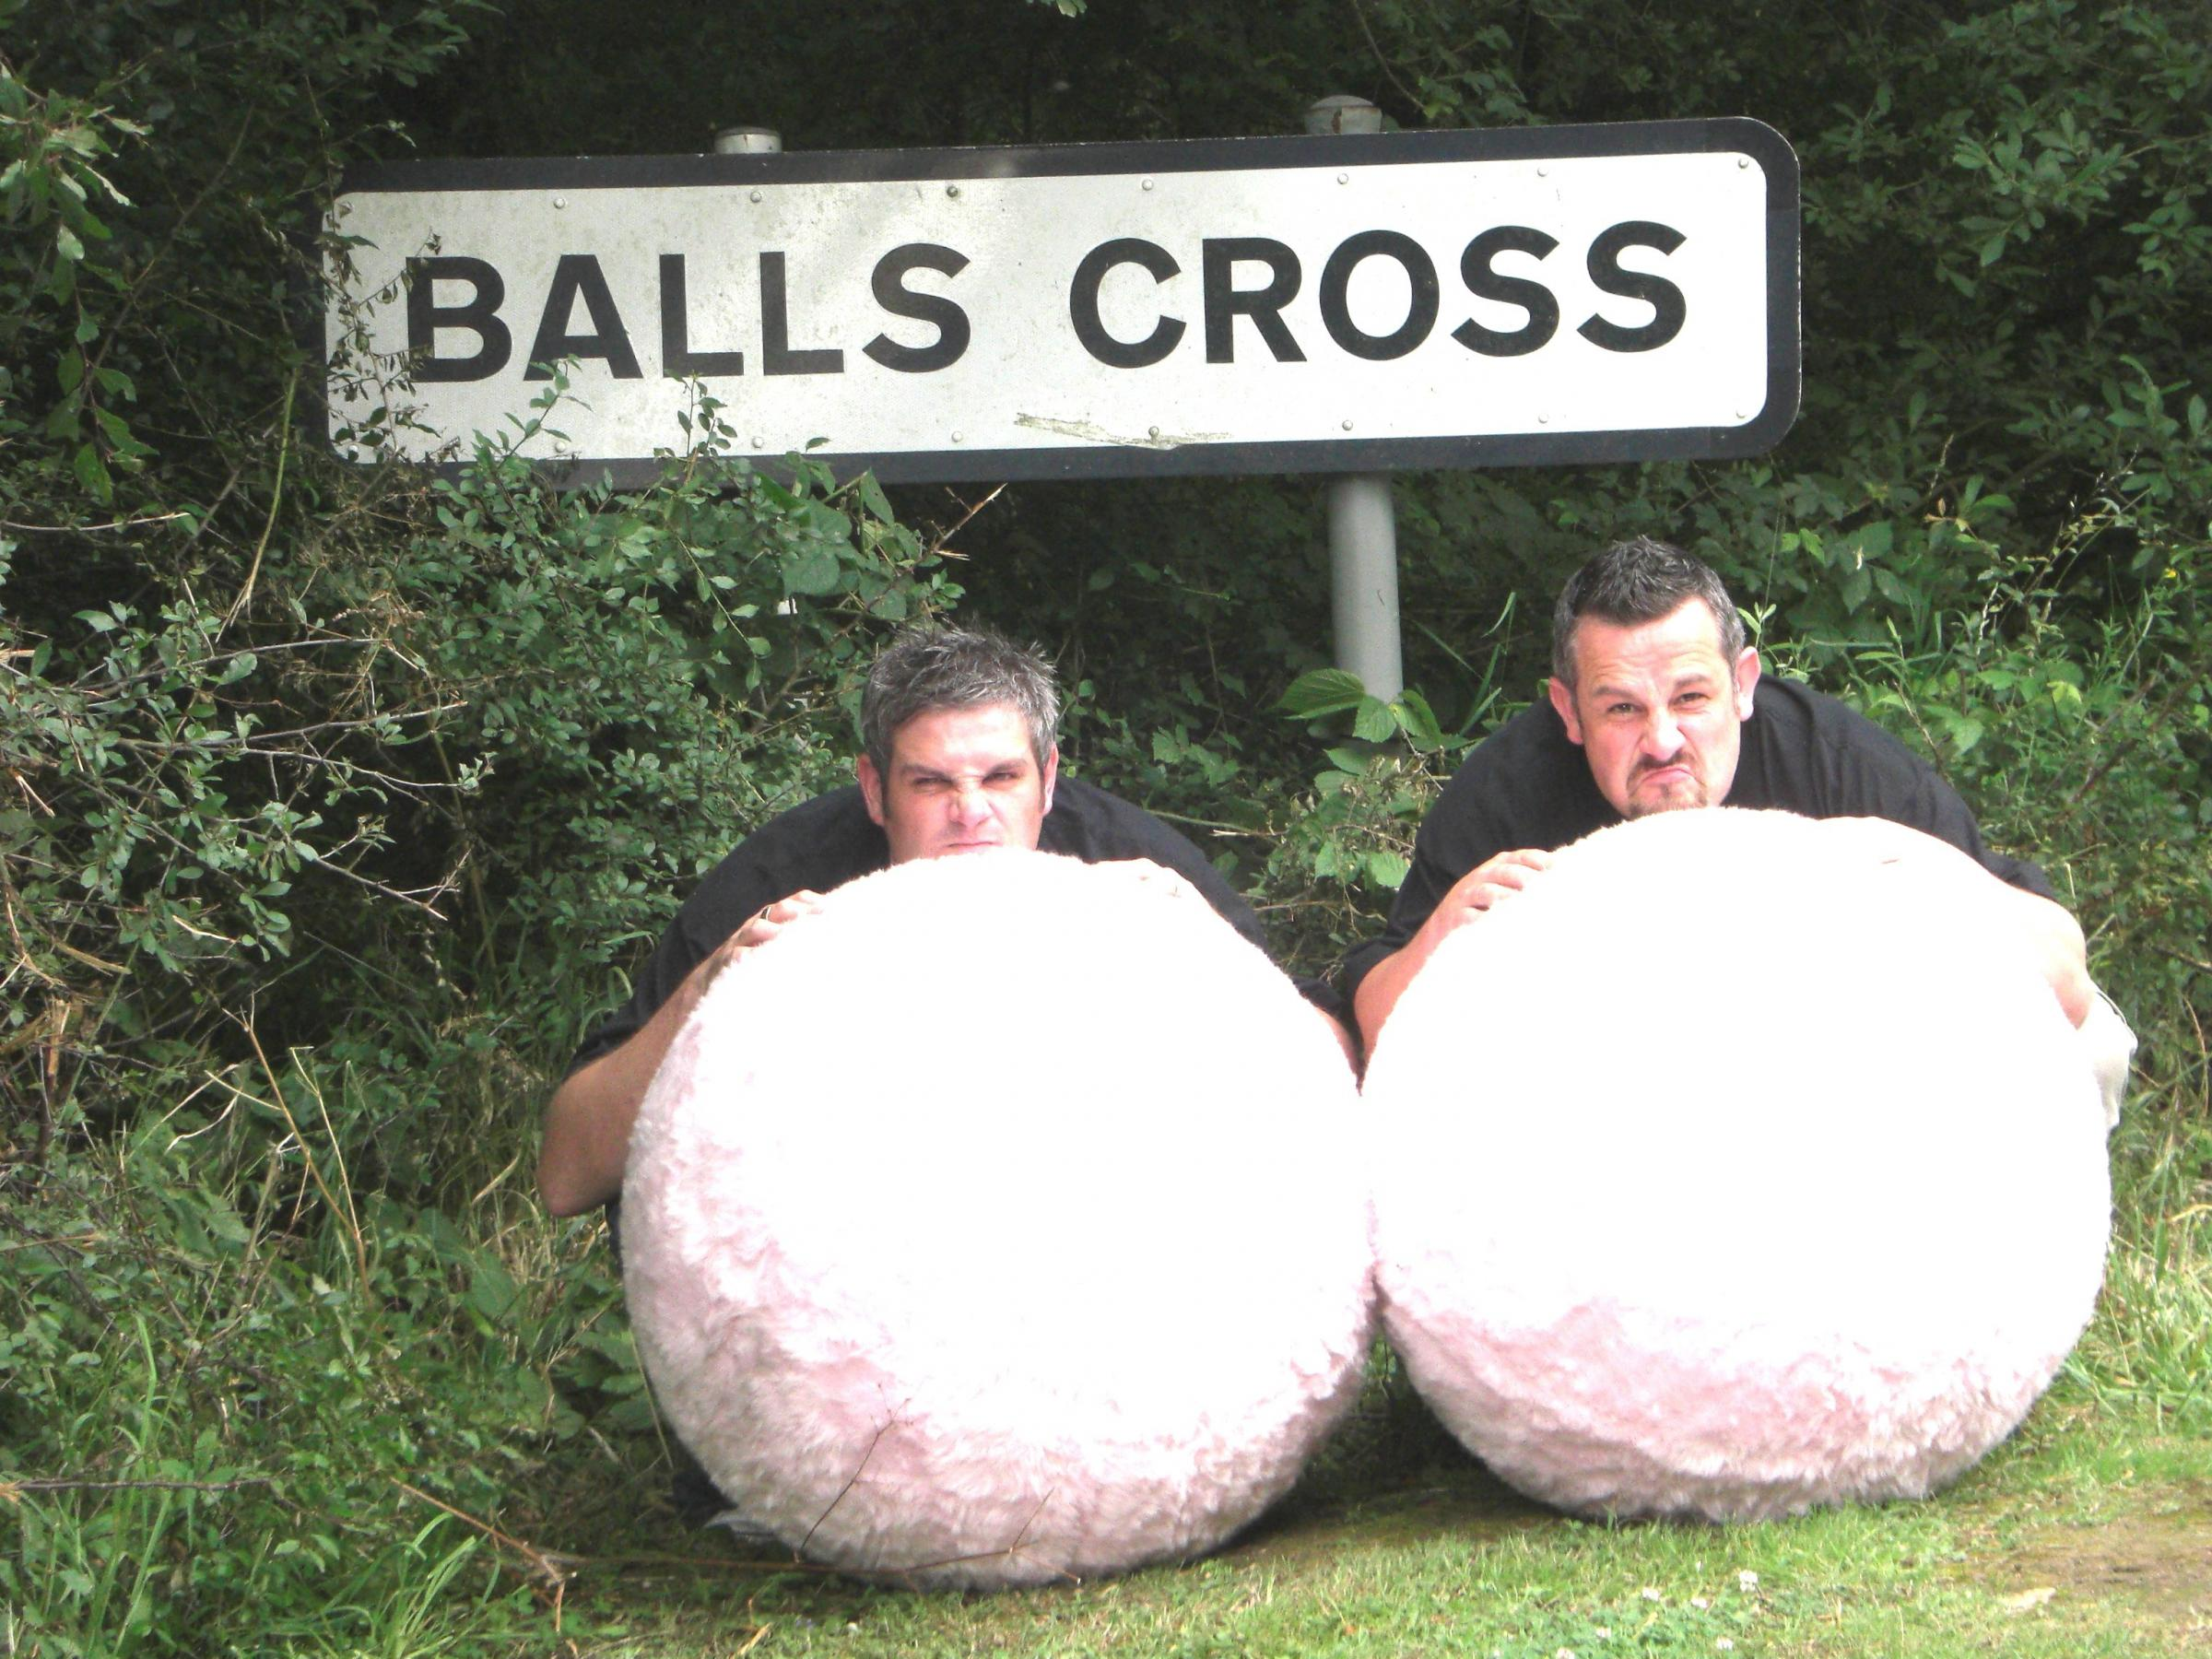 Darren Couchman and Richard Miller on a tour of rude placenames in 2008 to promote awareness of testicular cancer